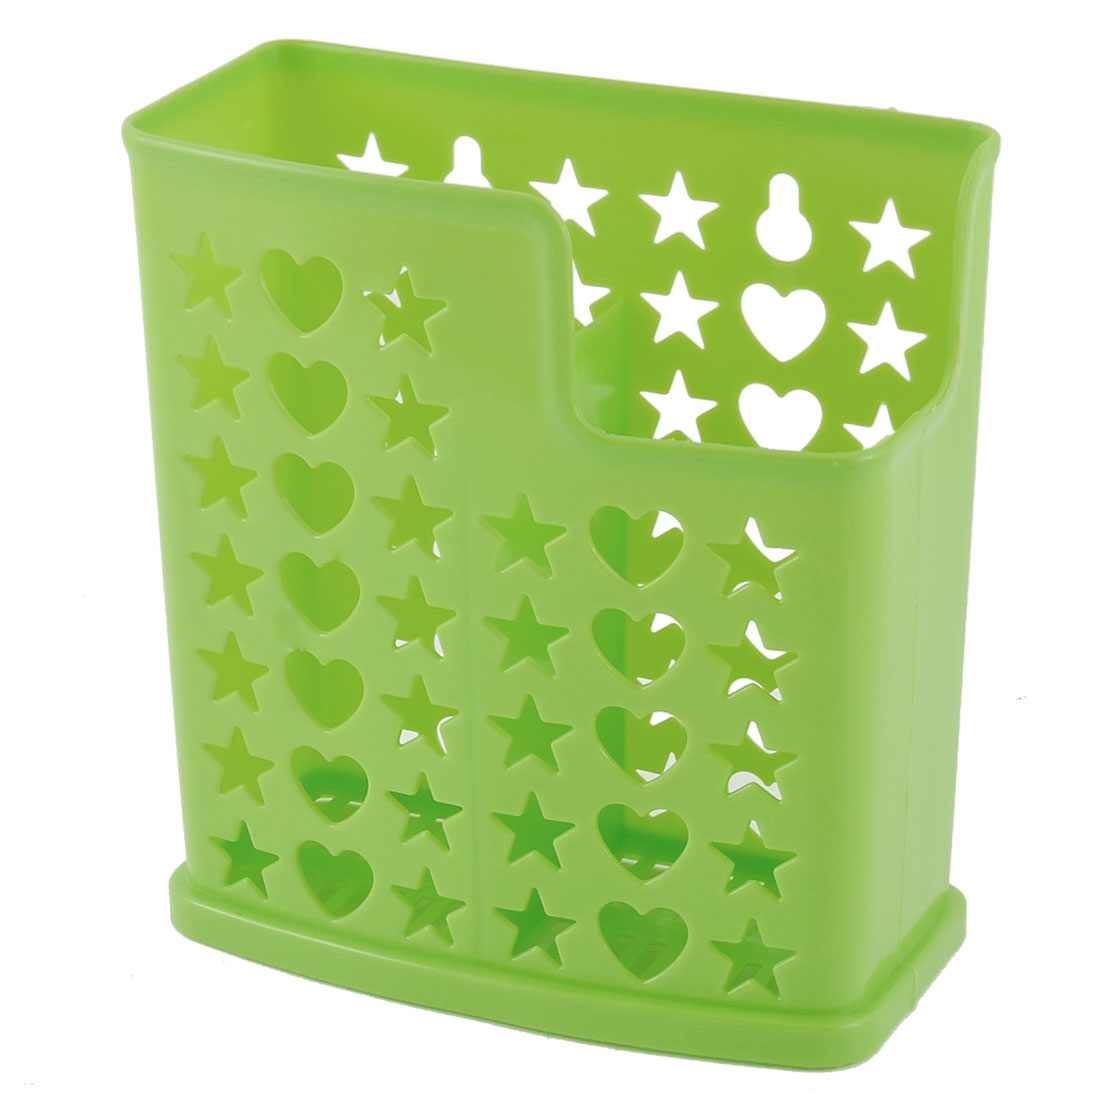 Household Rectangle 2 Compartments Hollow Out Hole Spoon Chopsticks Holder Box Green